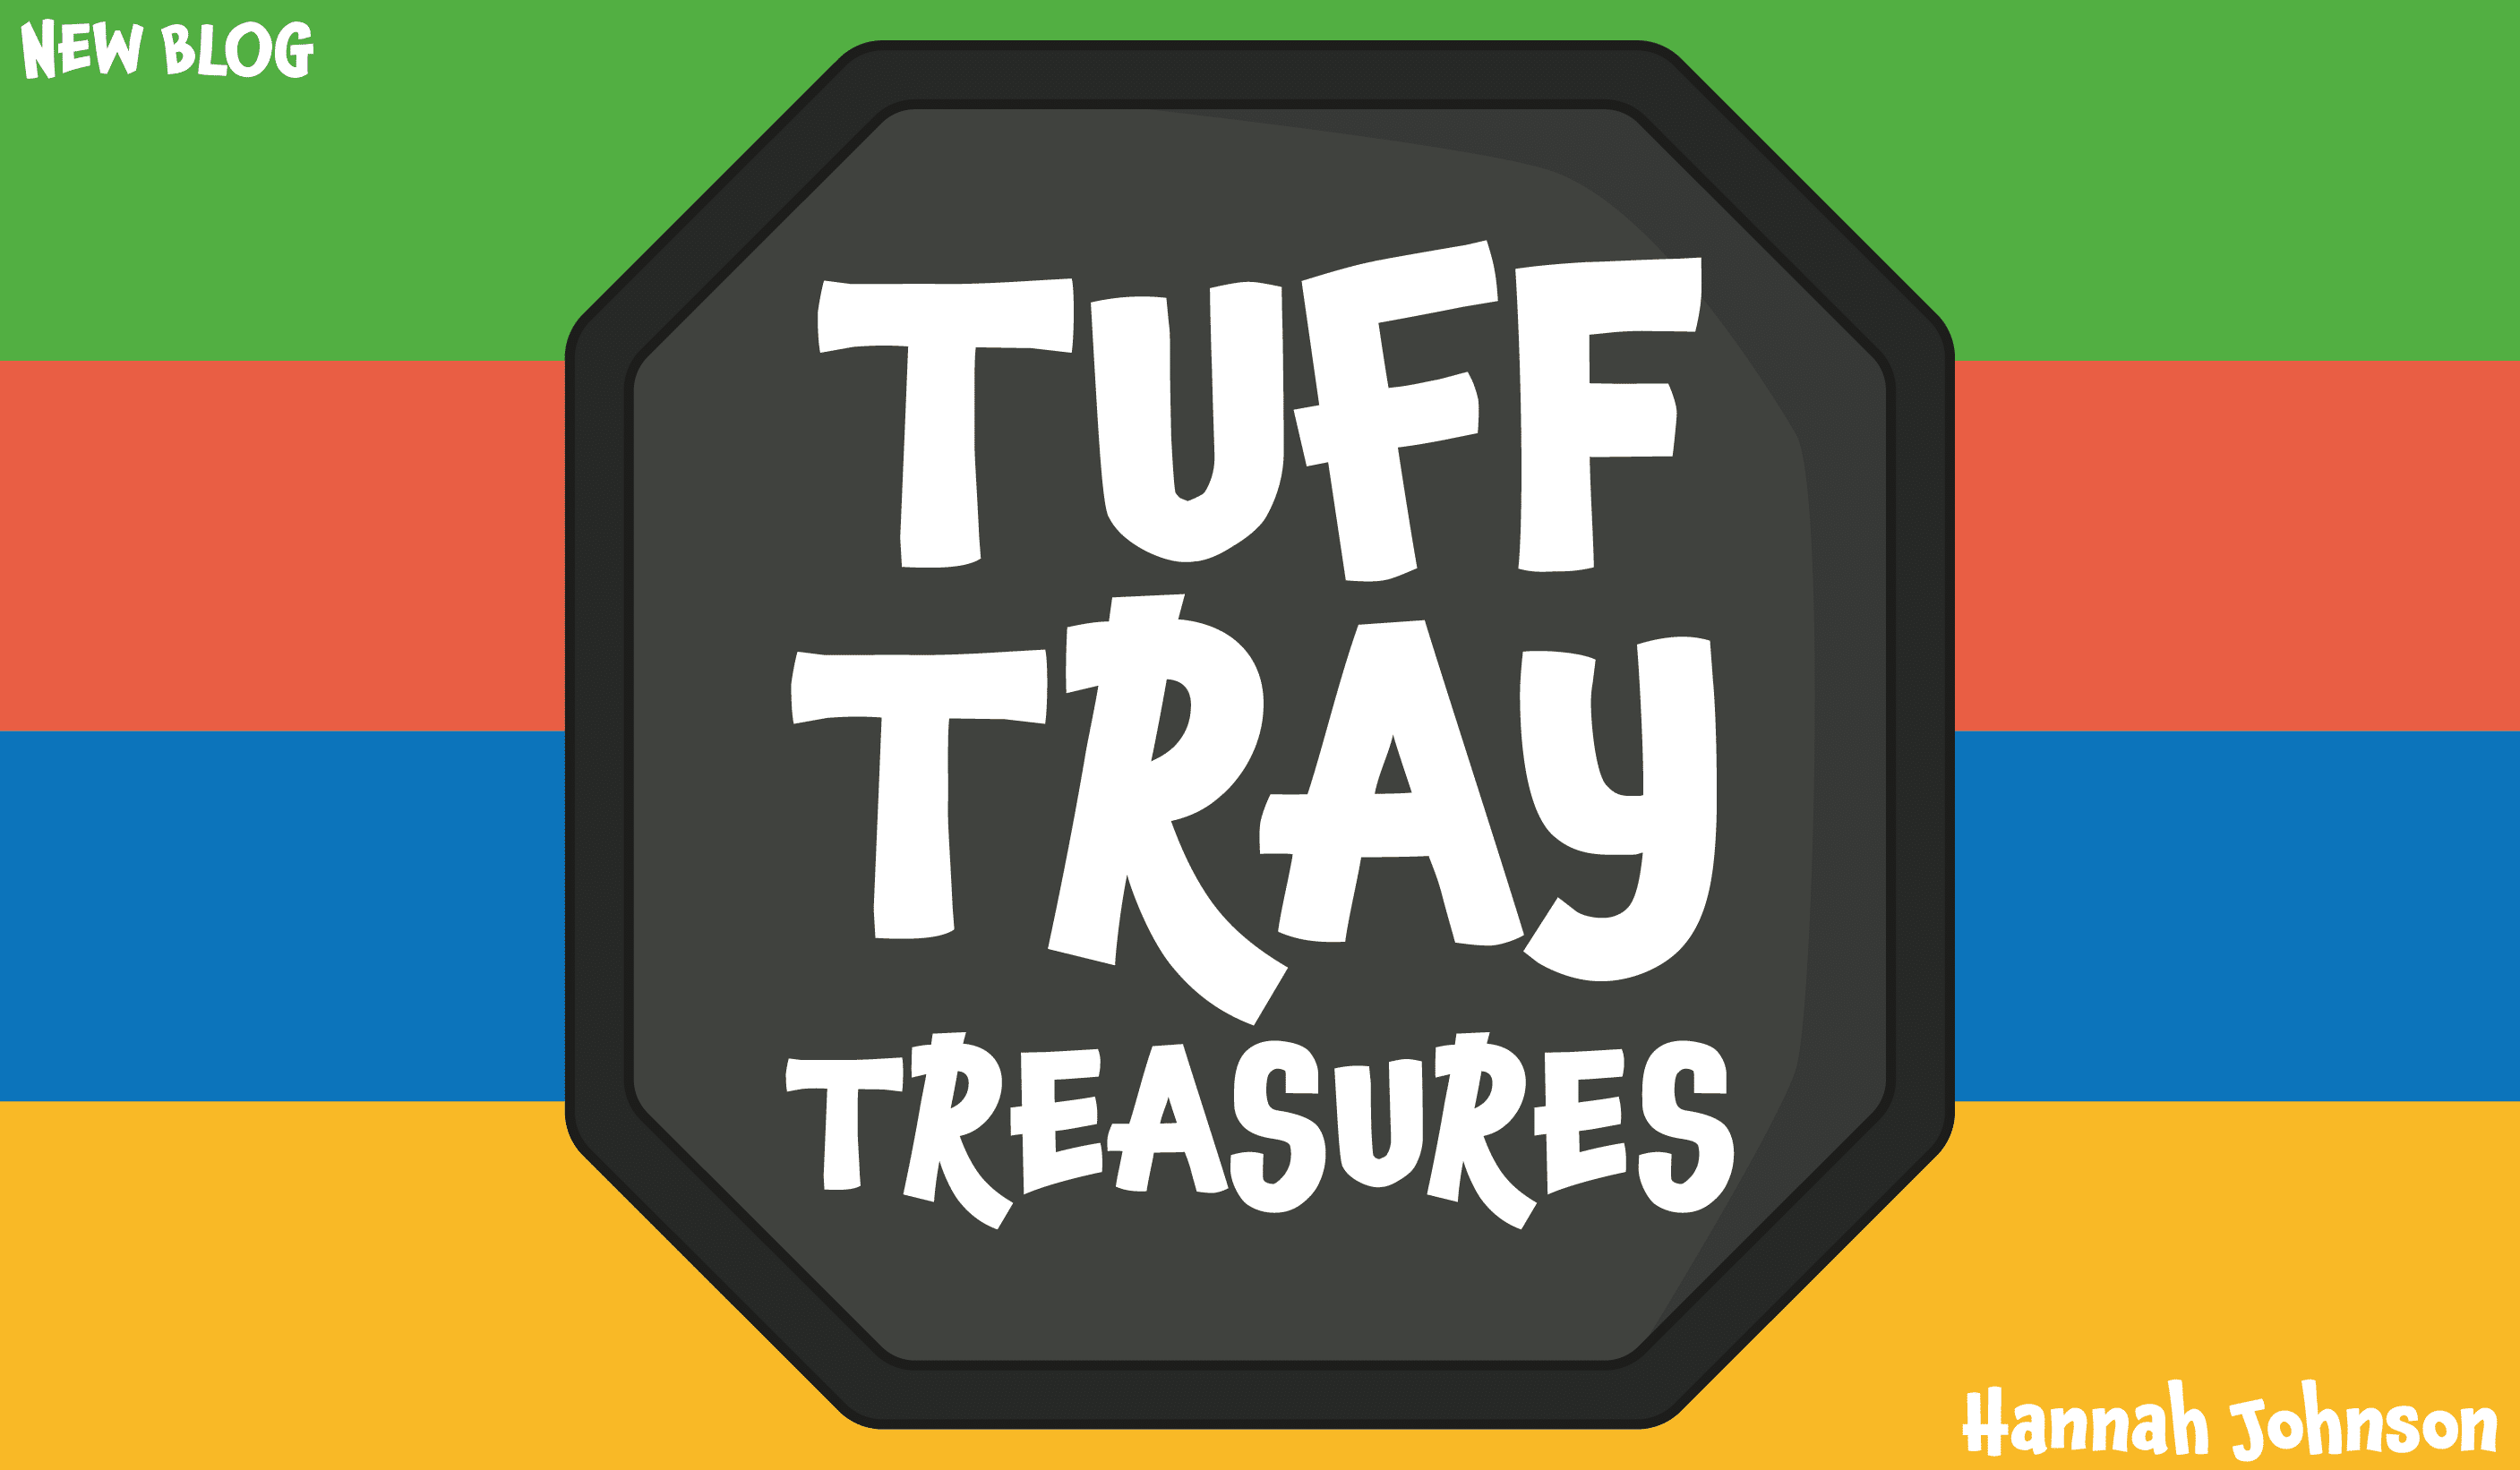 Tuff Tray Treasures